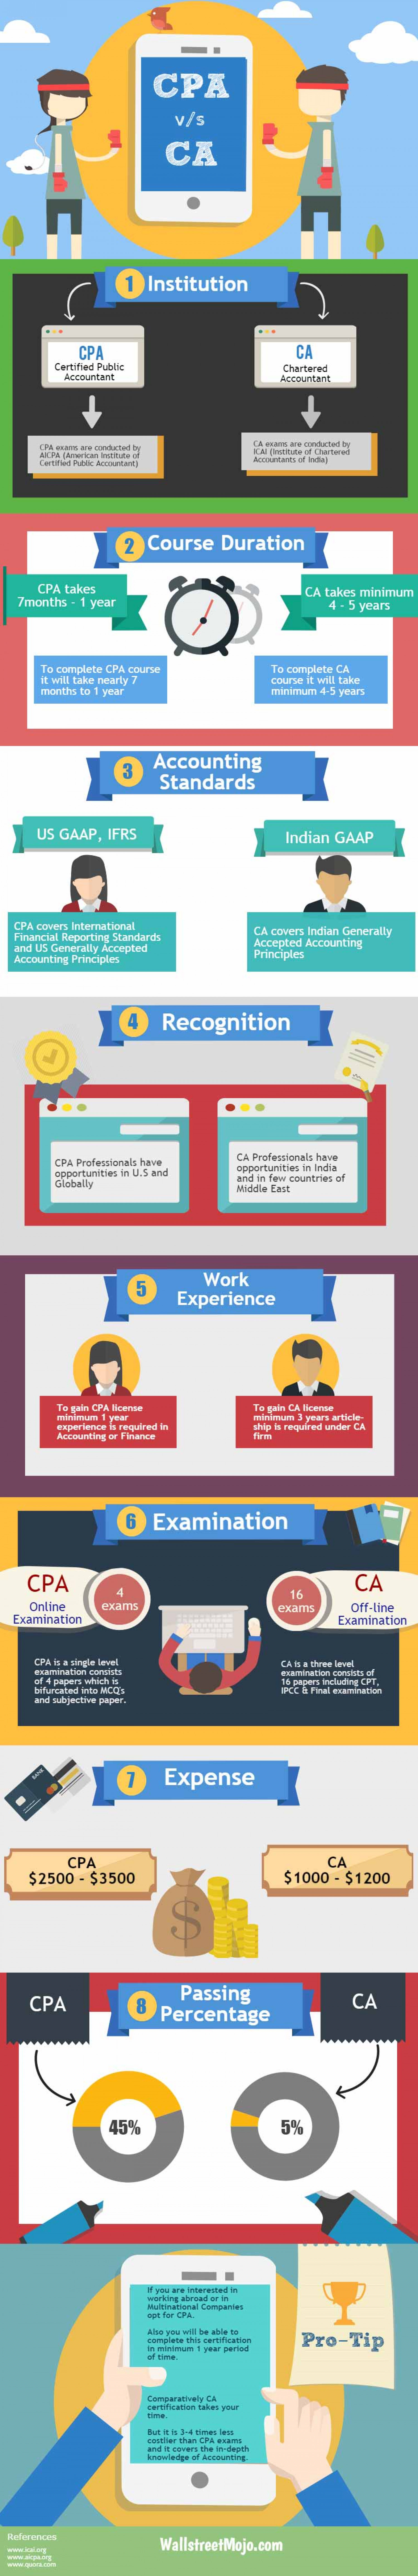 CPA vs CA – Which is better? Infographic